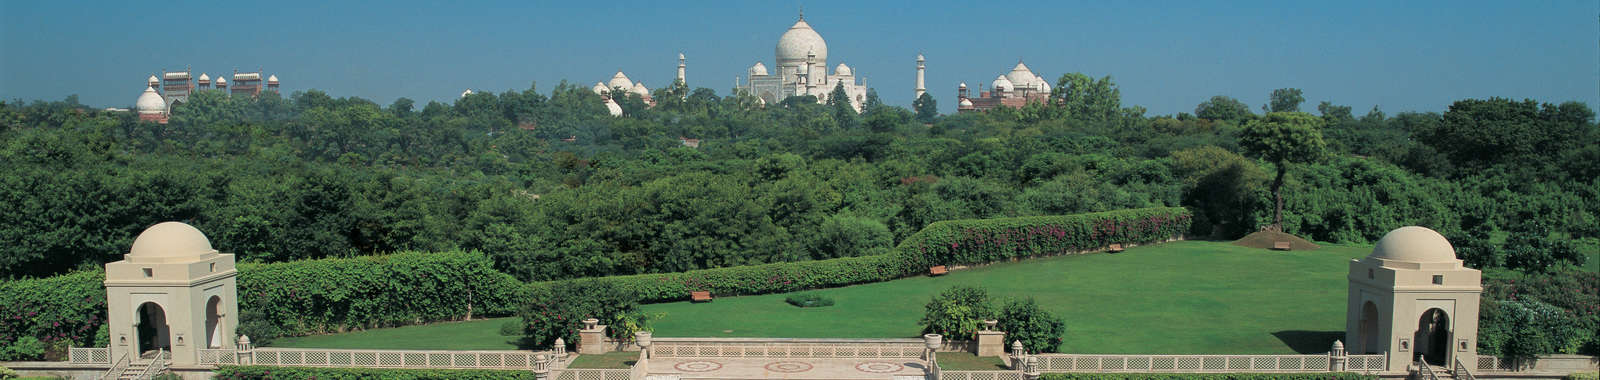 Luxury tailor made holiday to India staying at the luxurious Oberoi Hotels & Resorts